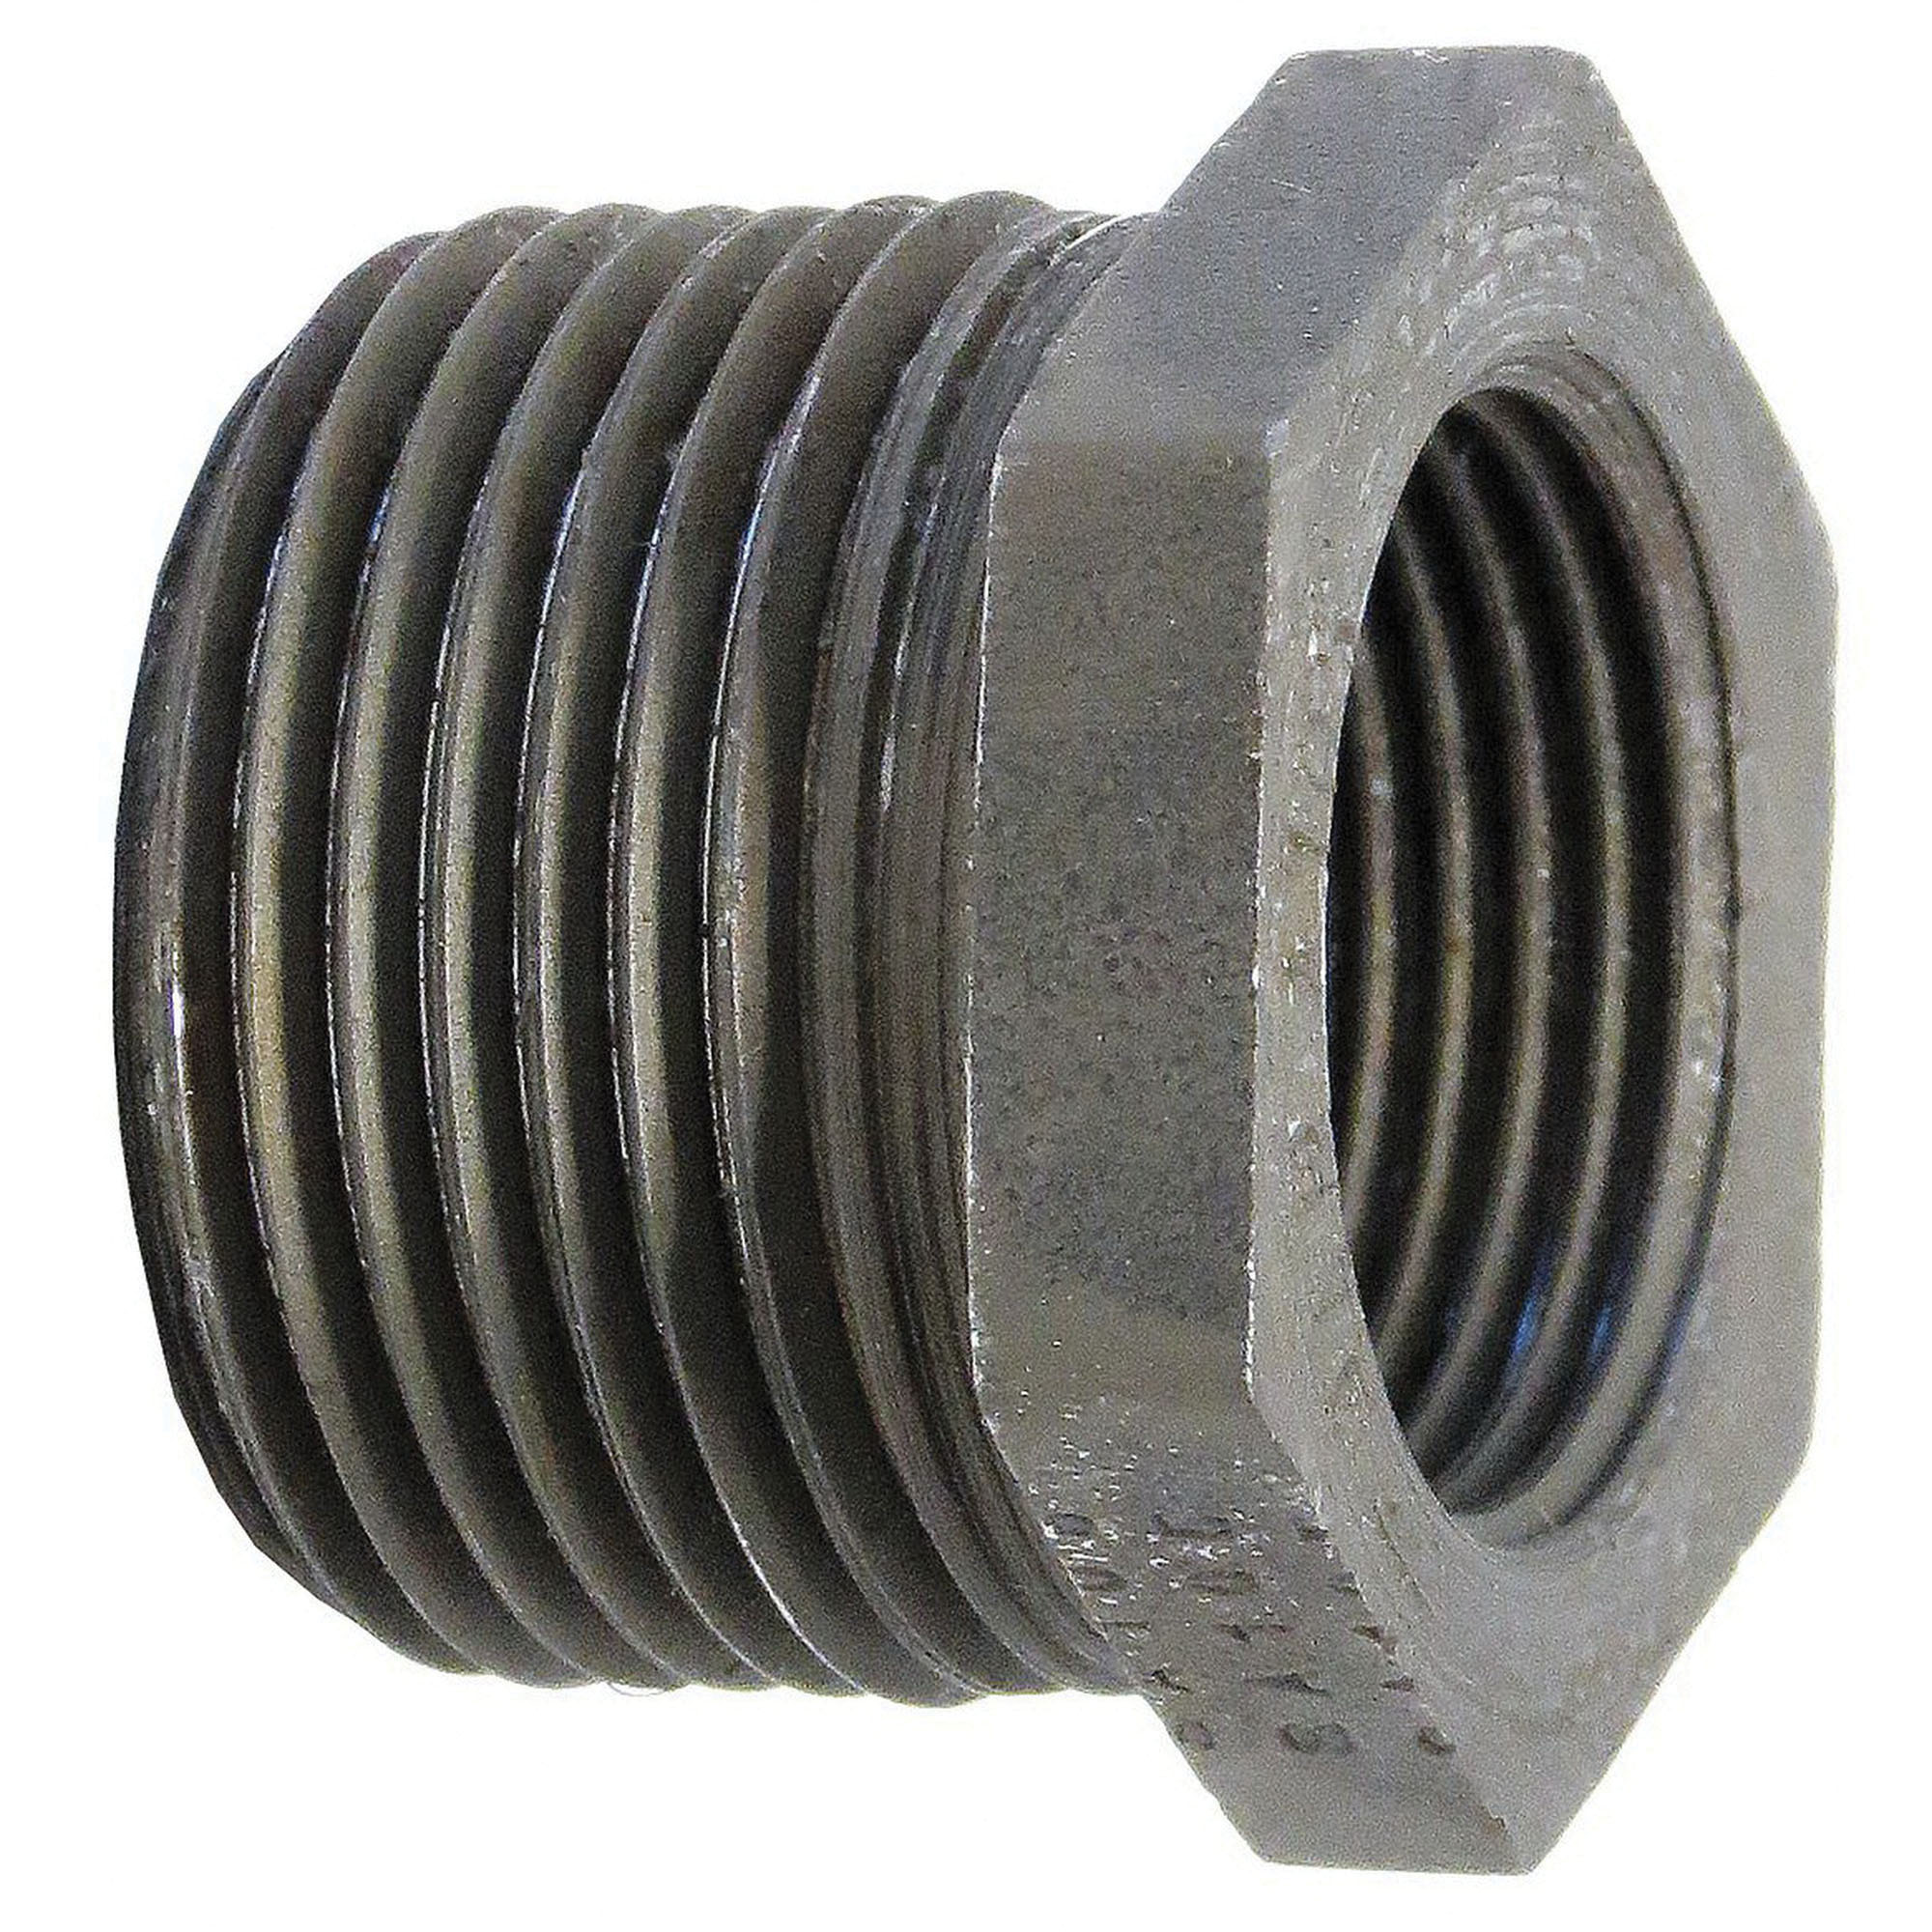 Steel Class 3000 Forged High Pressure Hex Bushing, 2 in x 1-1/2 in, MNPT x FNPT, Domestic, 12/CT